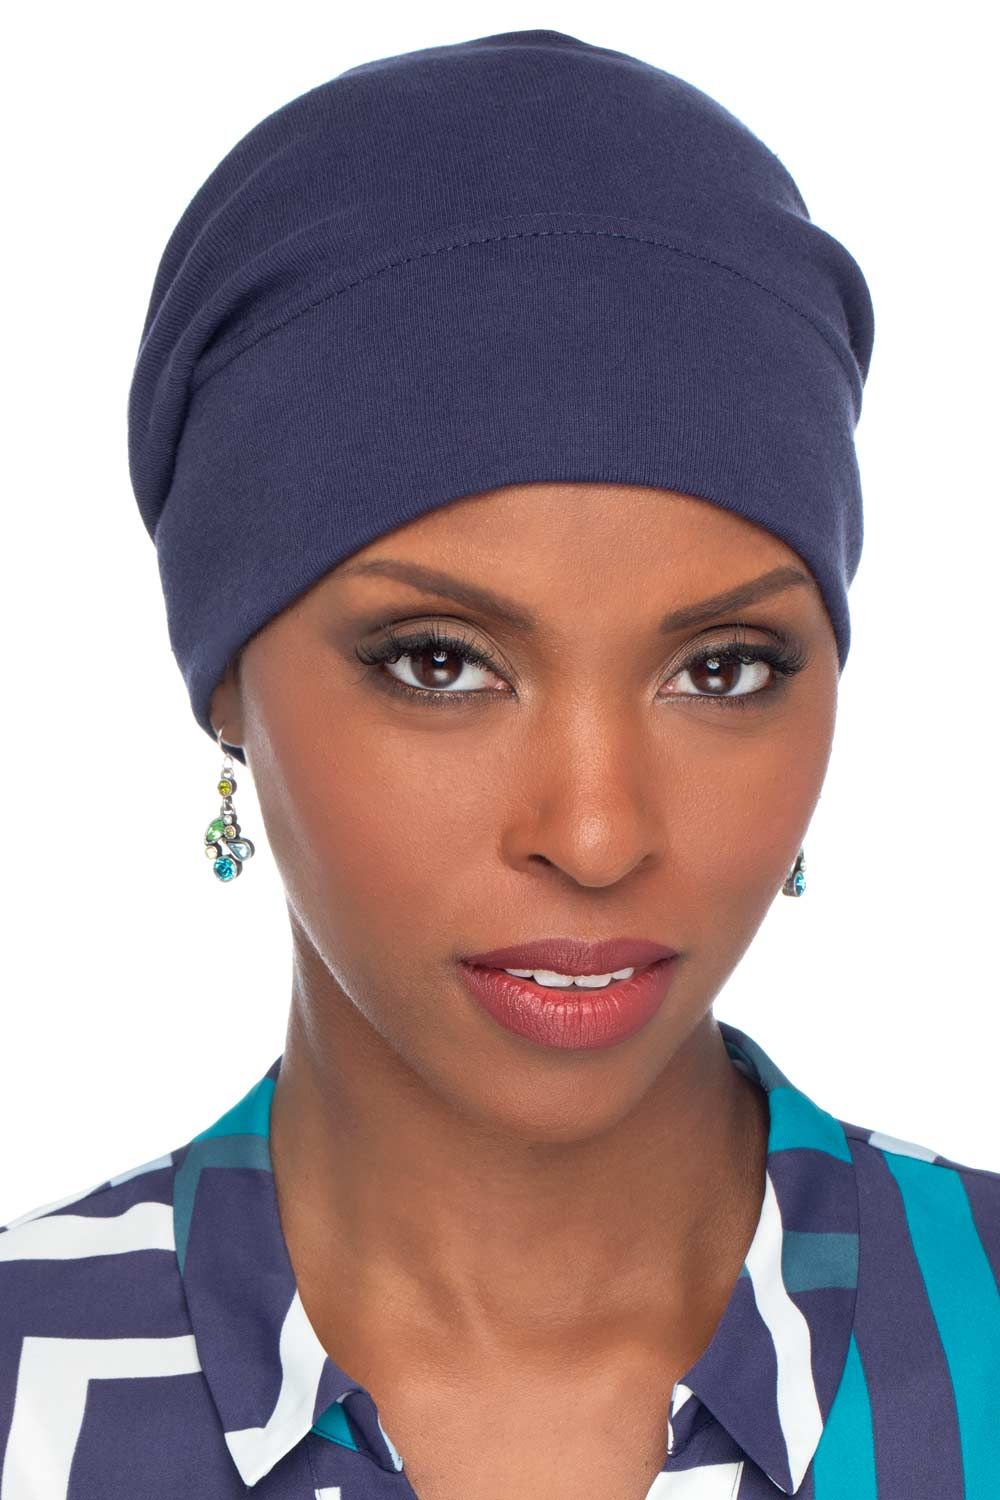 Best chemotherapy hats for women - Relaxed beanie